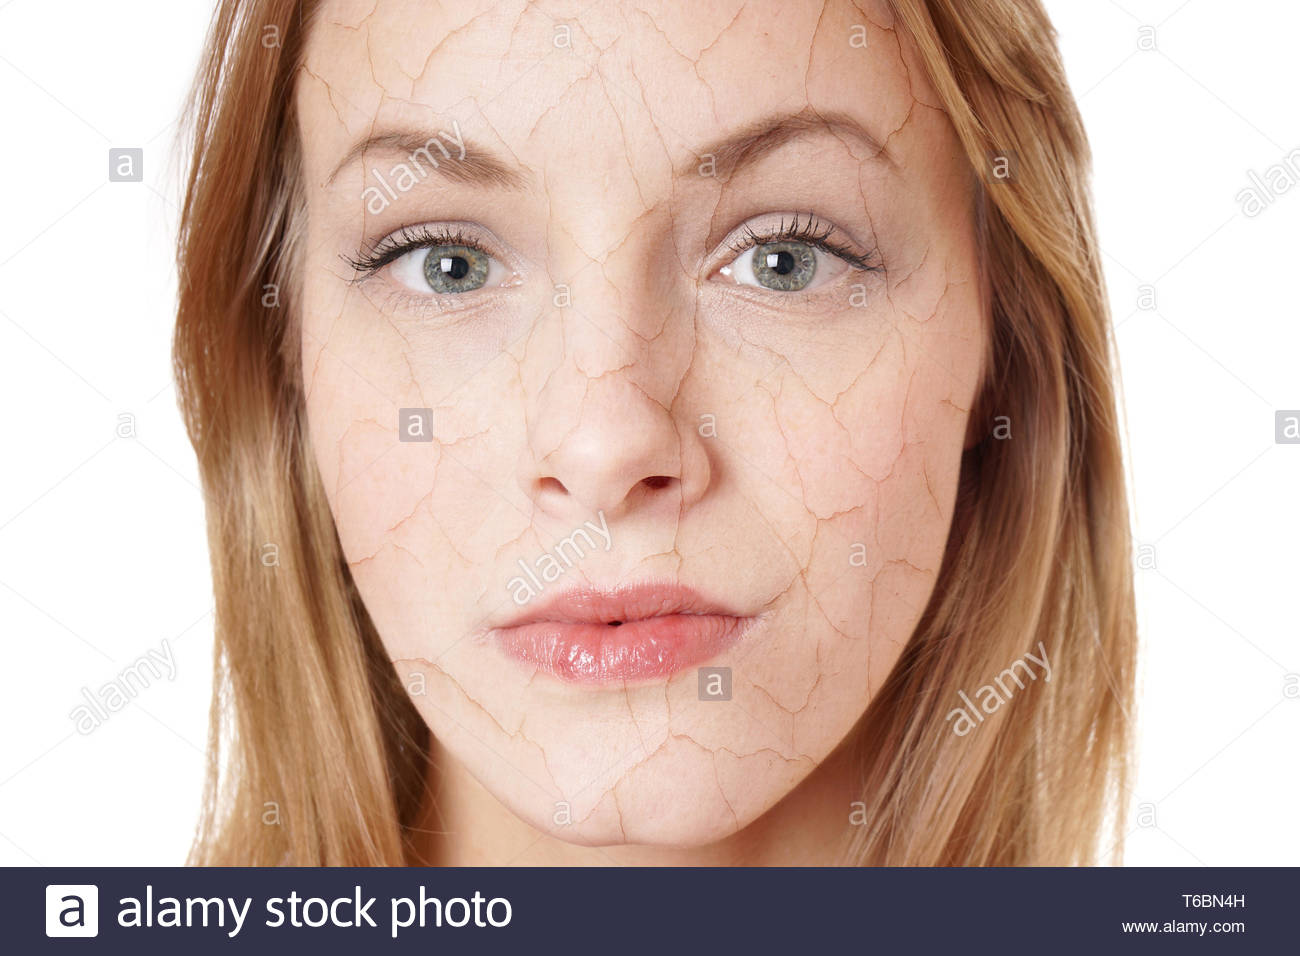 dry skin condition Stock Photo